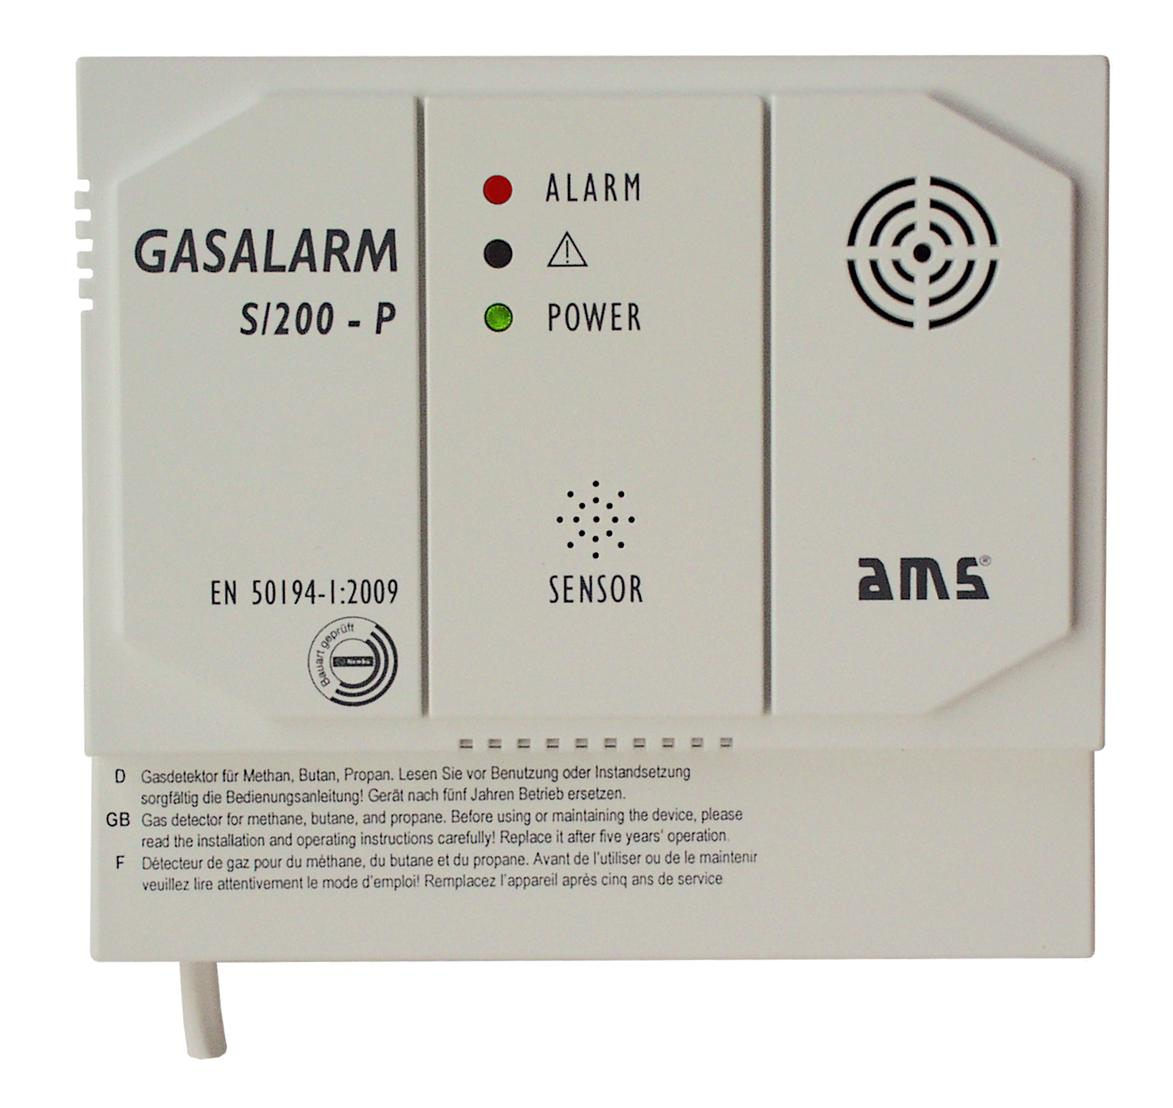 GASALARM S200-P - Made in Germany - AMS Messtechnik